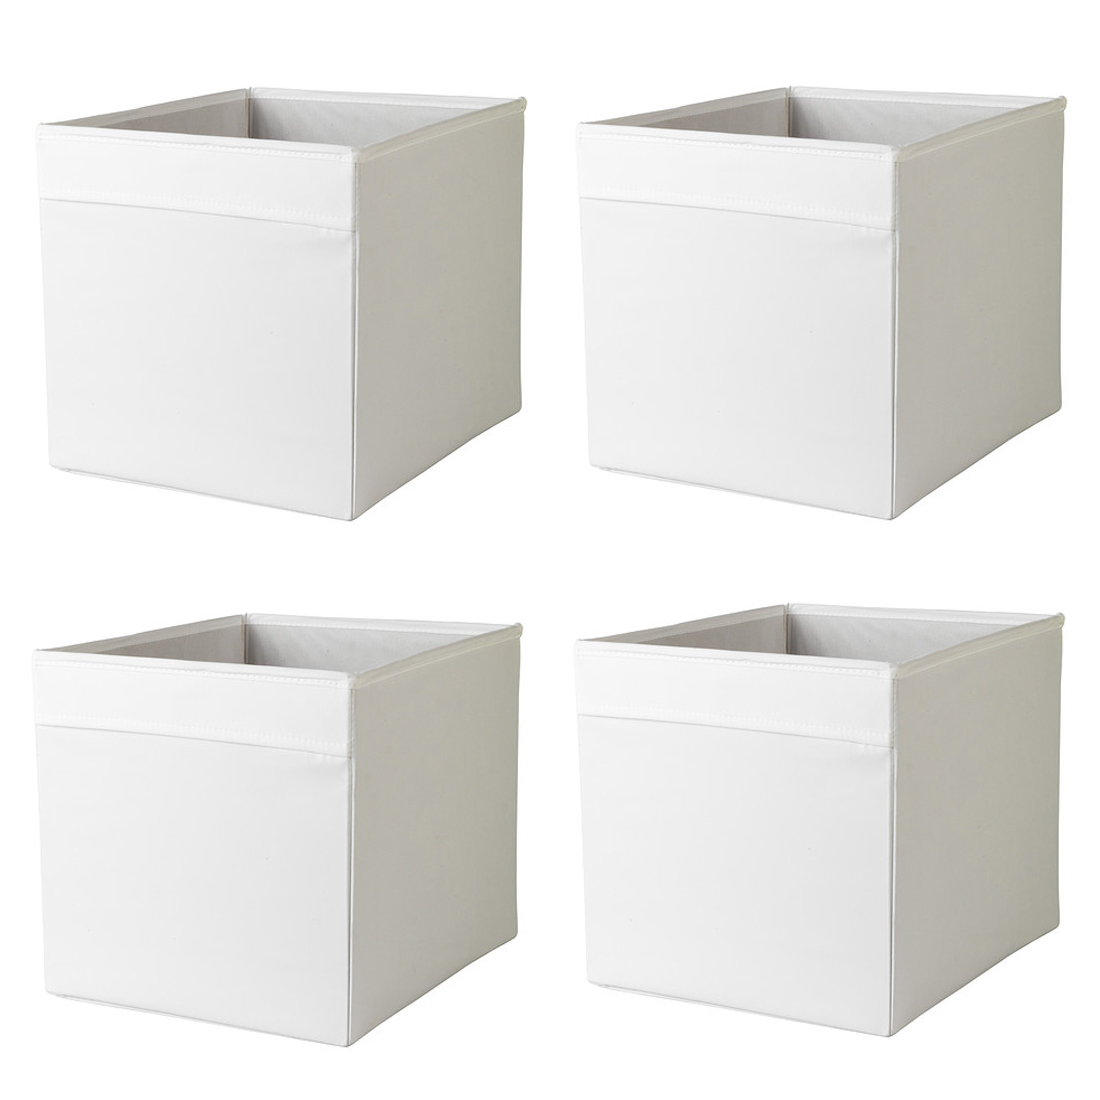 Aufbewahrungsbox Ikea Expedit Ikea DrÖna 4 Set Fach Box Expedit Kallax Regal Kiste